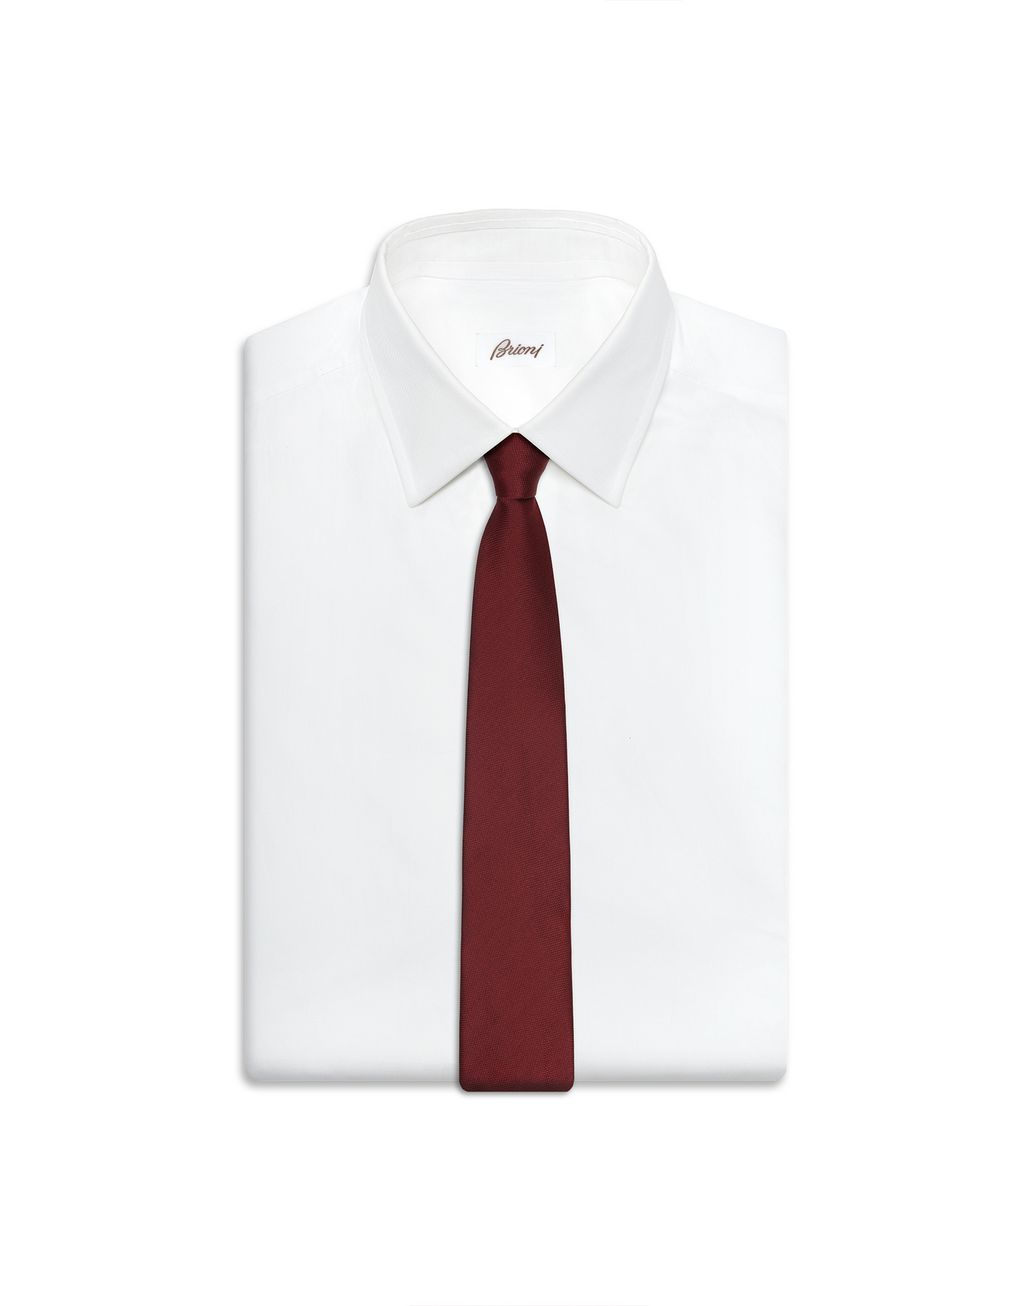 BRIONI Cravate tissée bordeaux Cravate Homme e